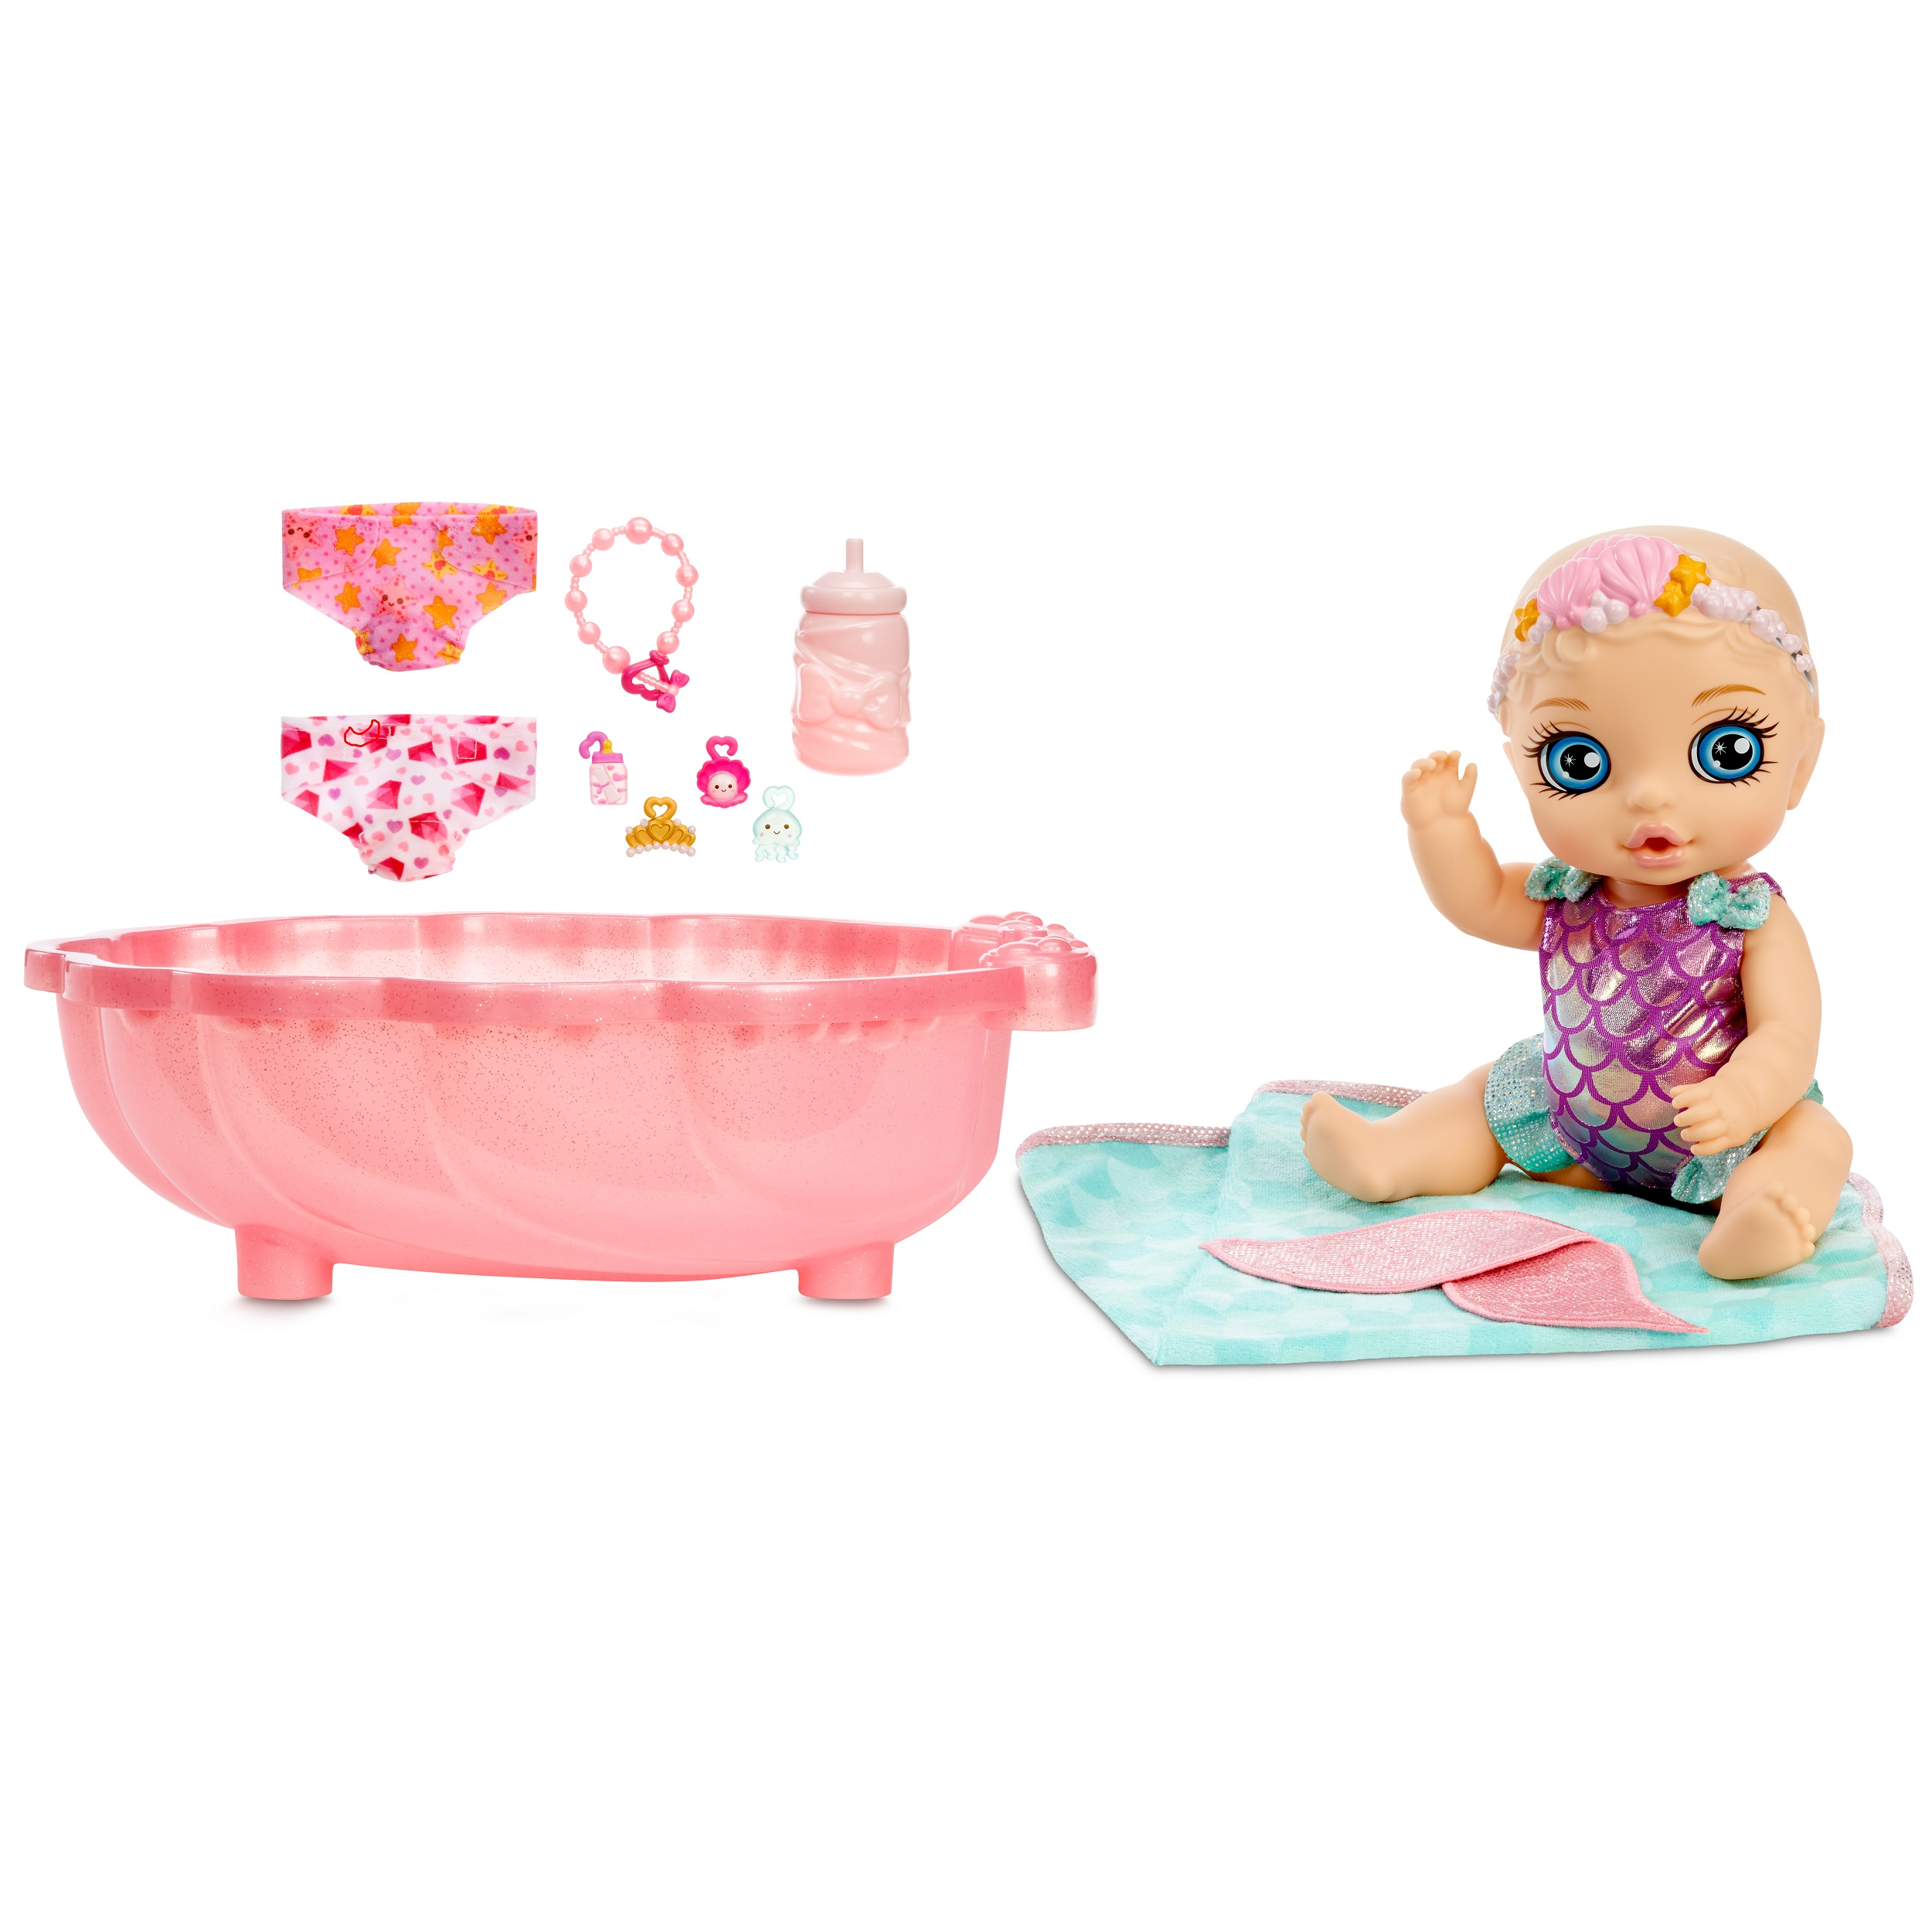 BABY born Surprise Mermaid Surprise – Baby Doll with Teal Towel and 20+ Surprises (Walmart)